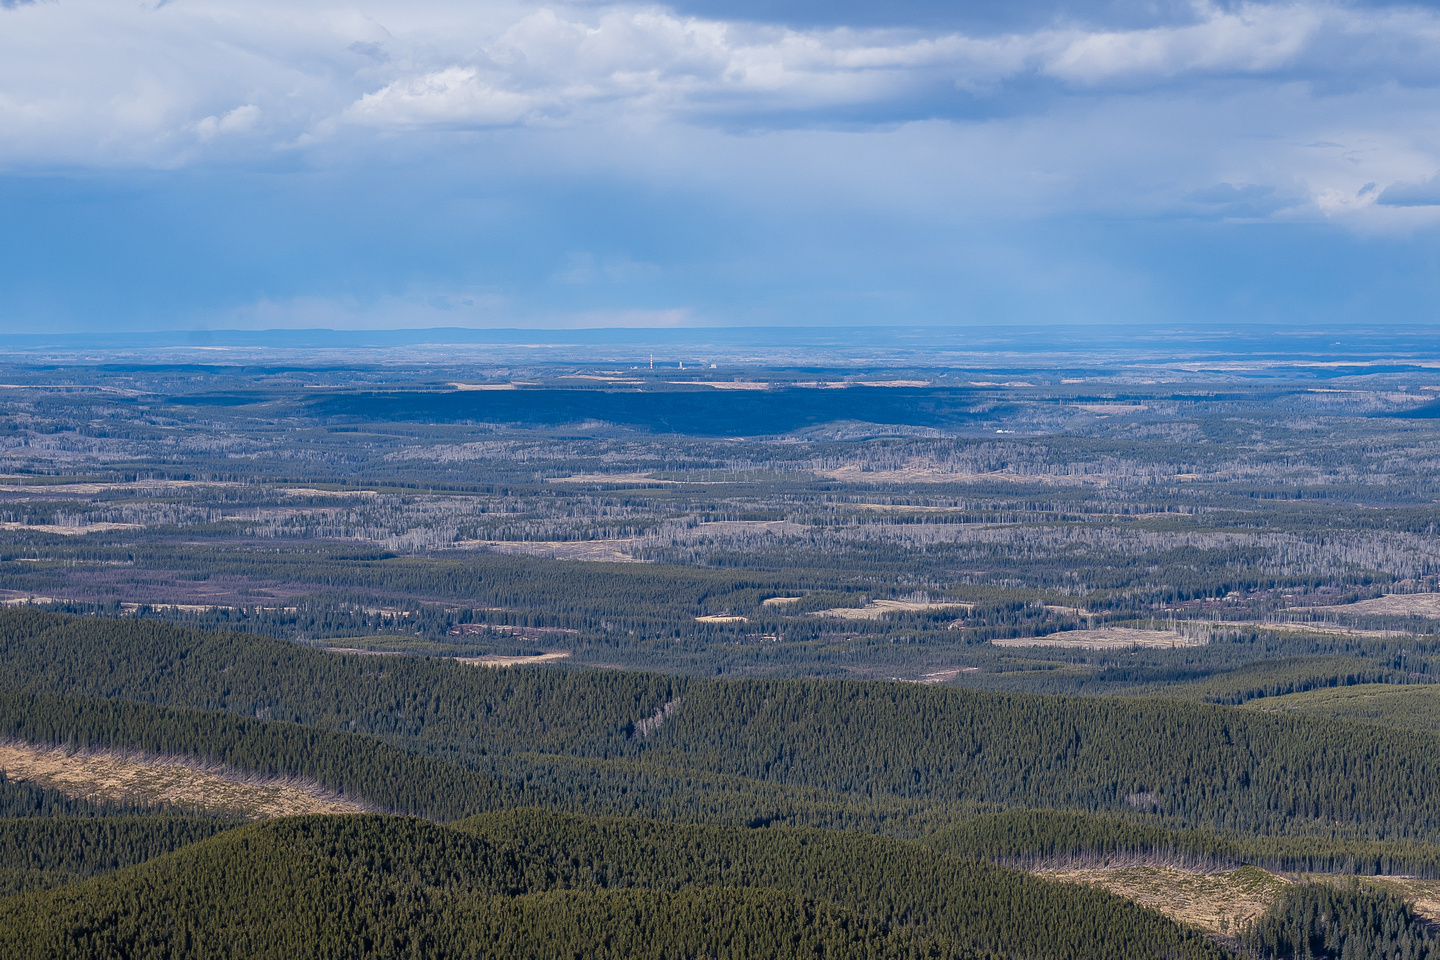 Gas plants to the east reflect Alberta's vast stores of this natural resource.